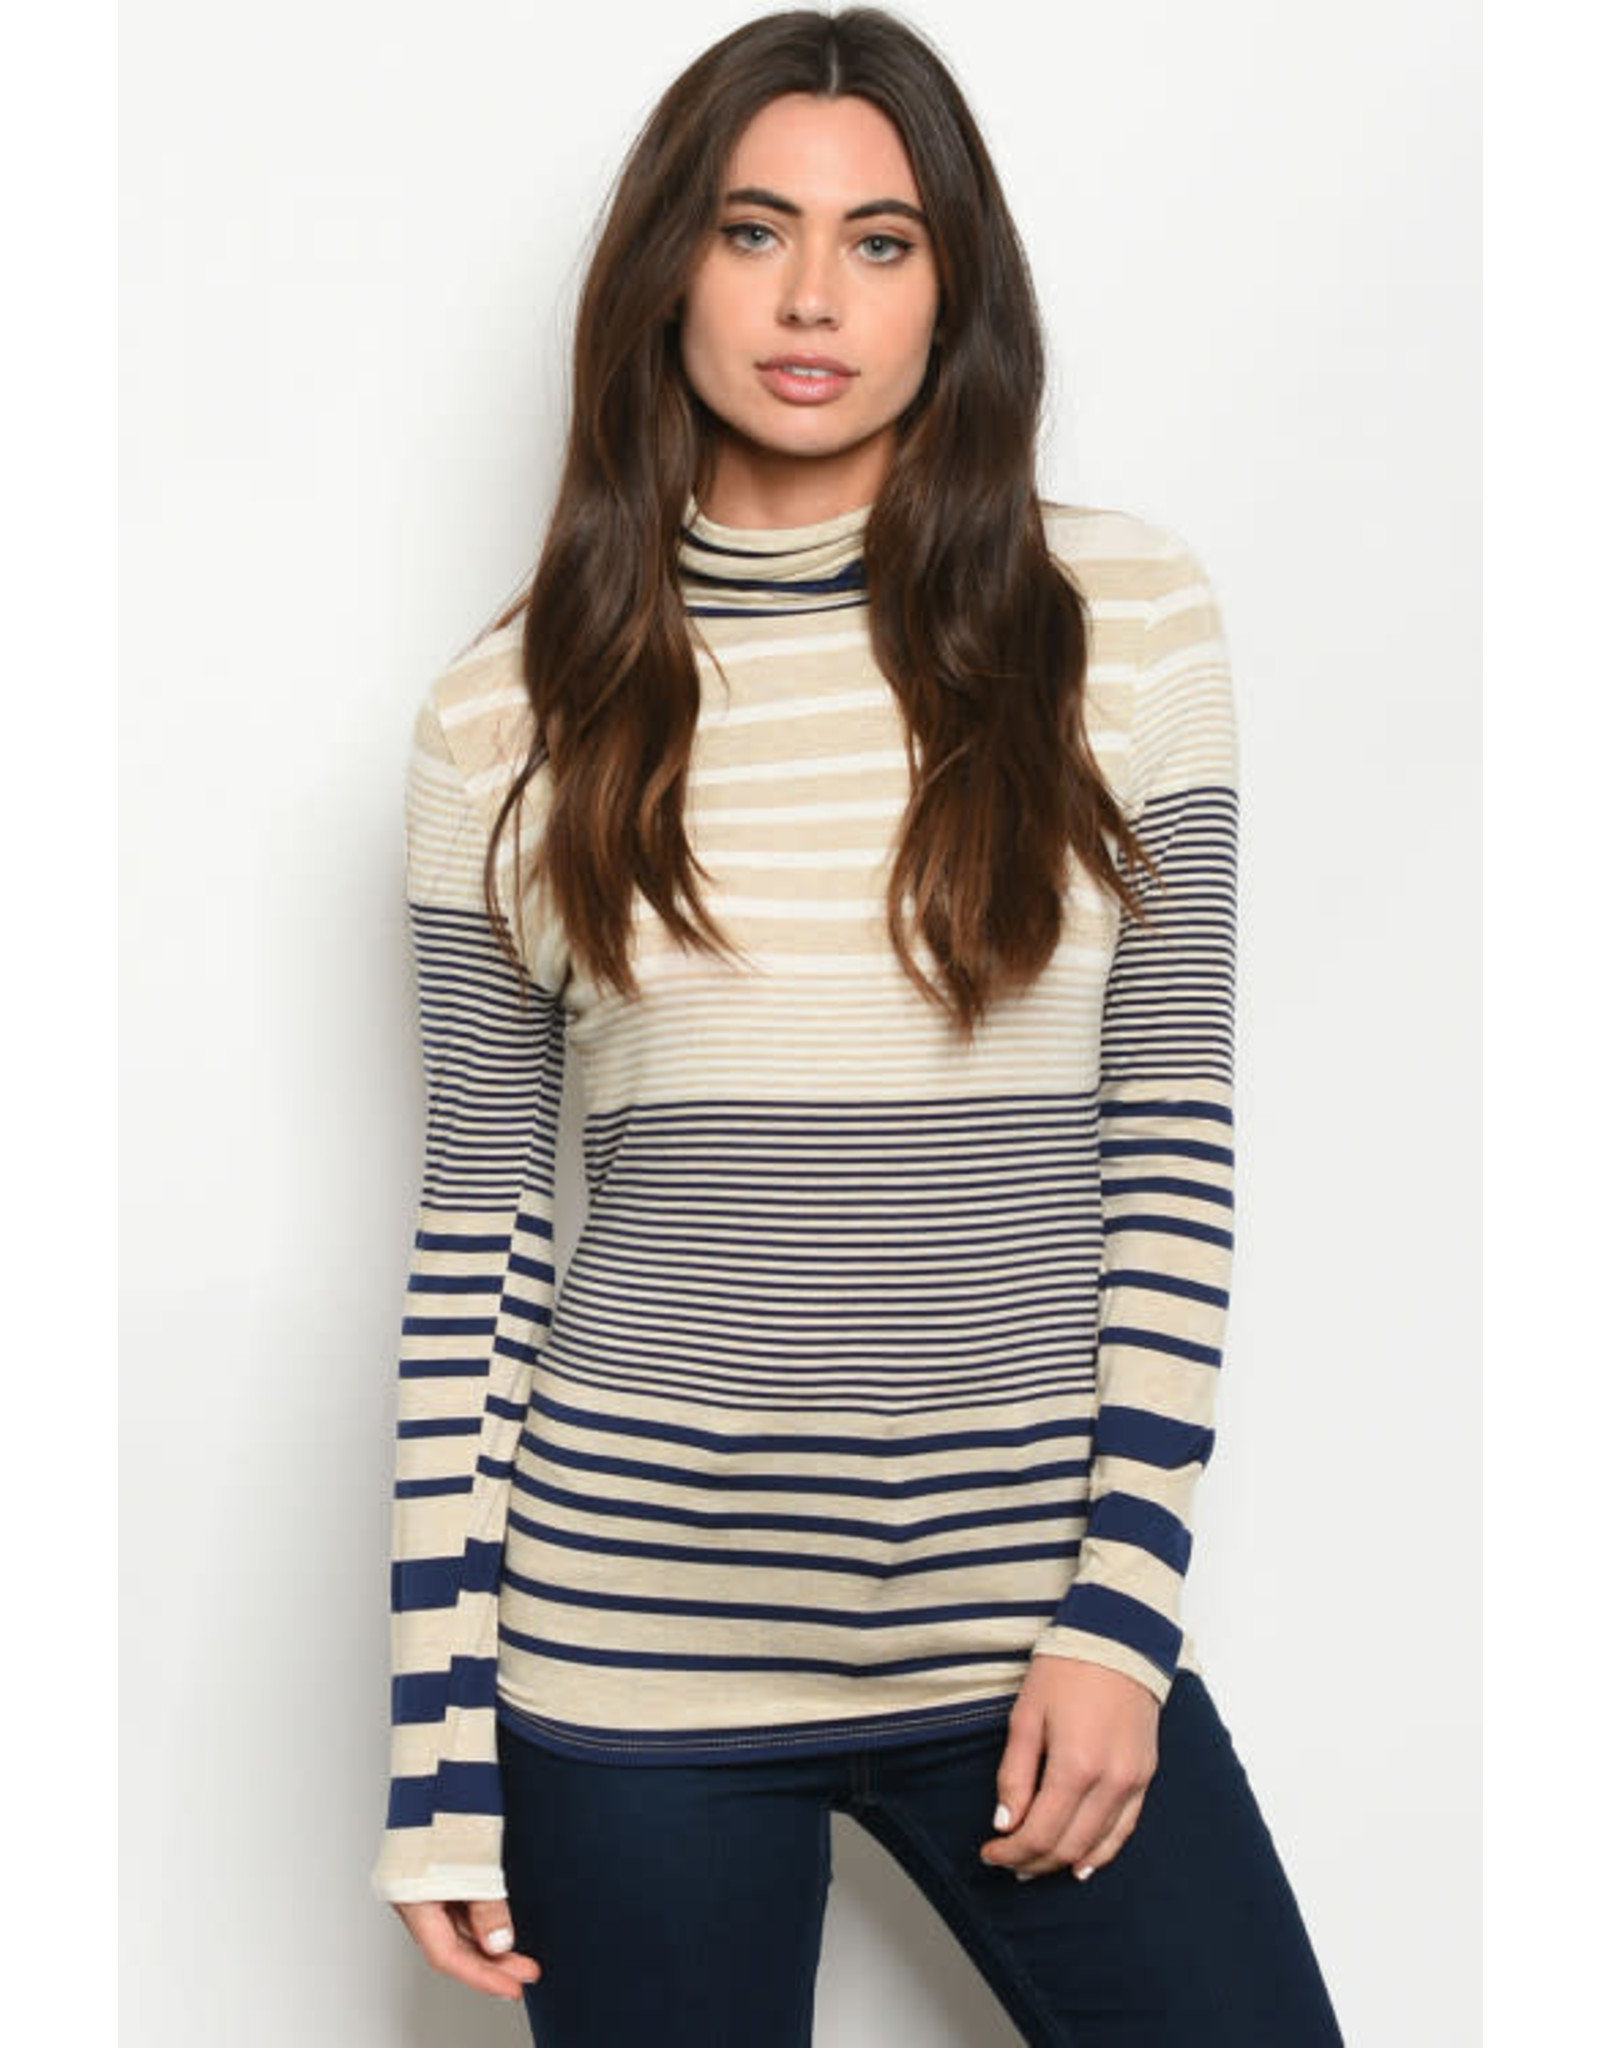 OATMEAL NAVY STRIPES TURTLE NECK TOP